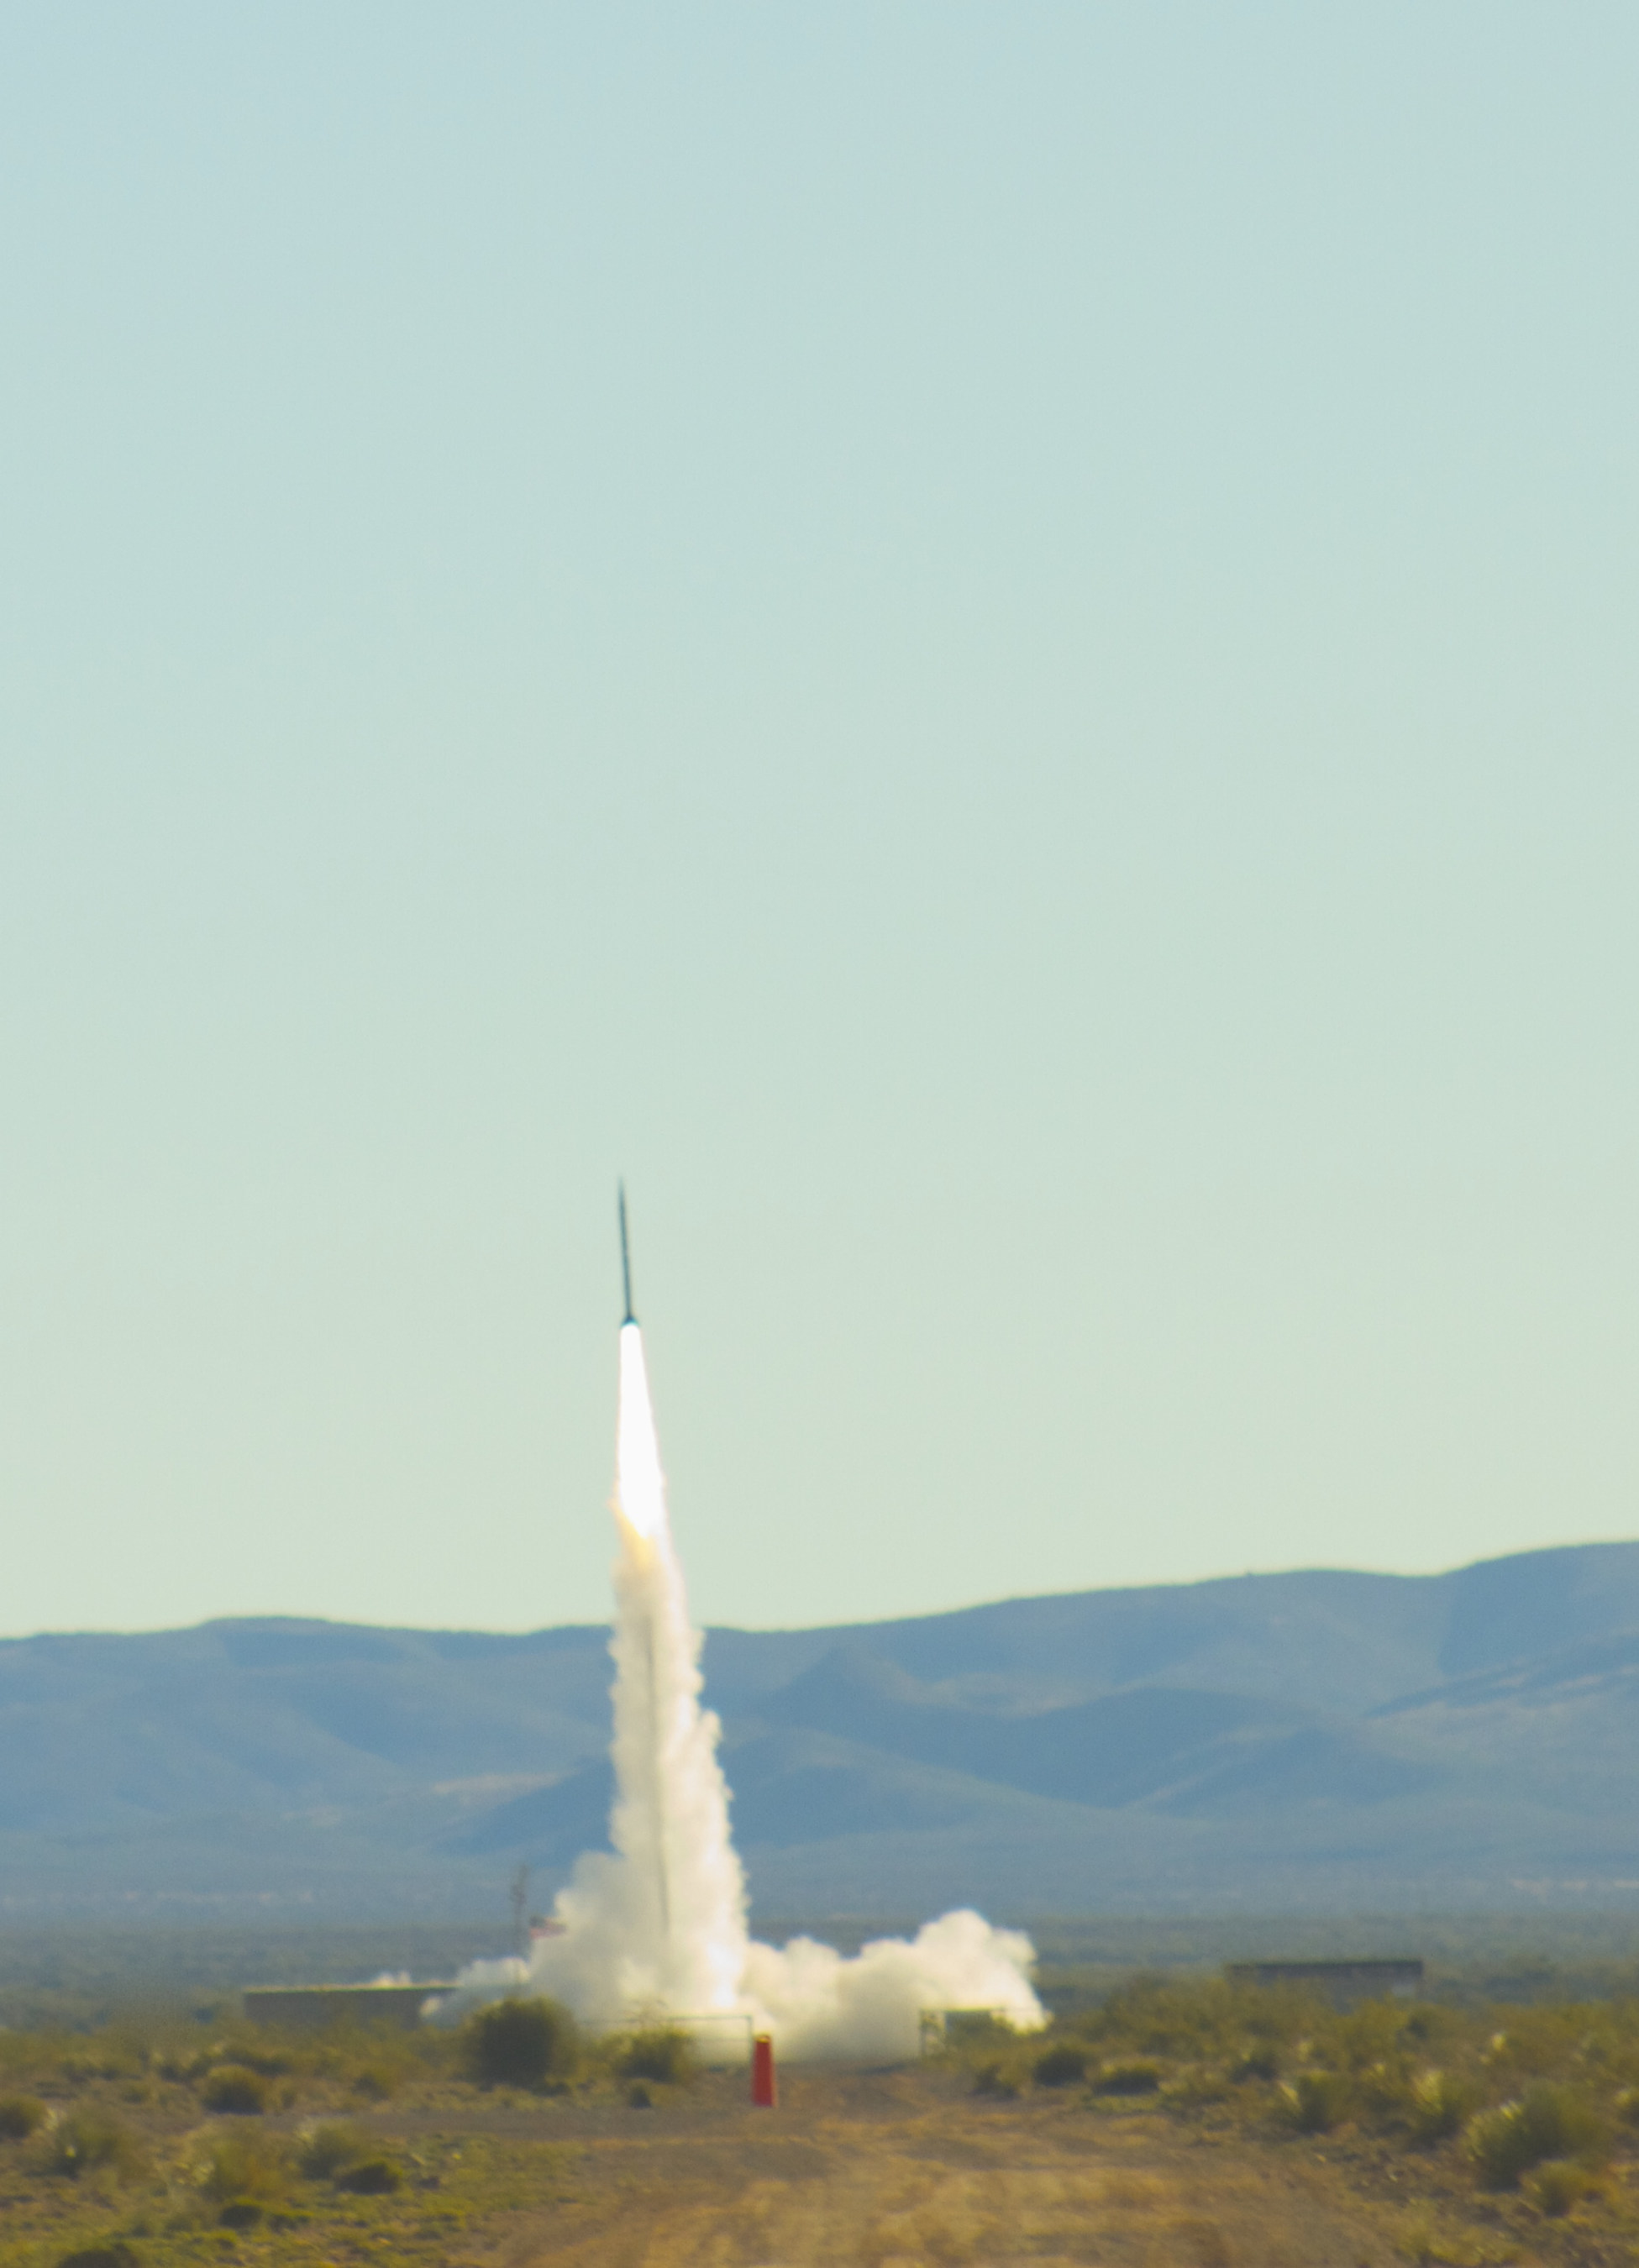 Successful launch of UP Aerospace SL-10 payload rocket. Courtesy of Spaceport America